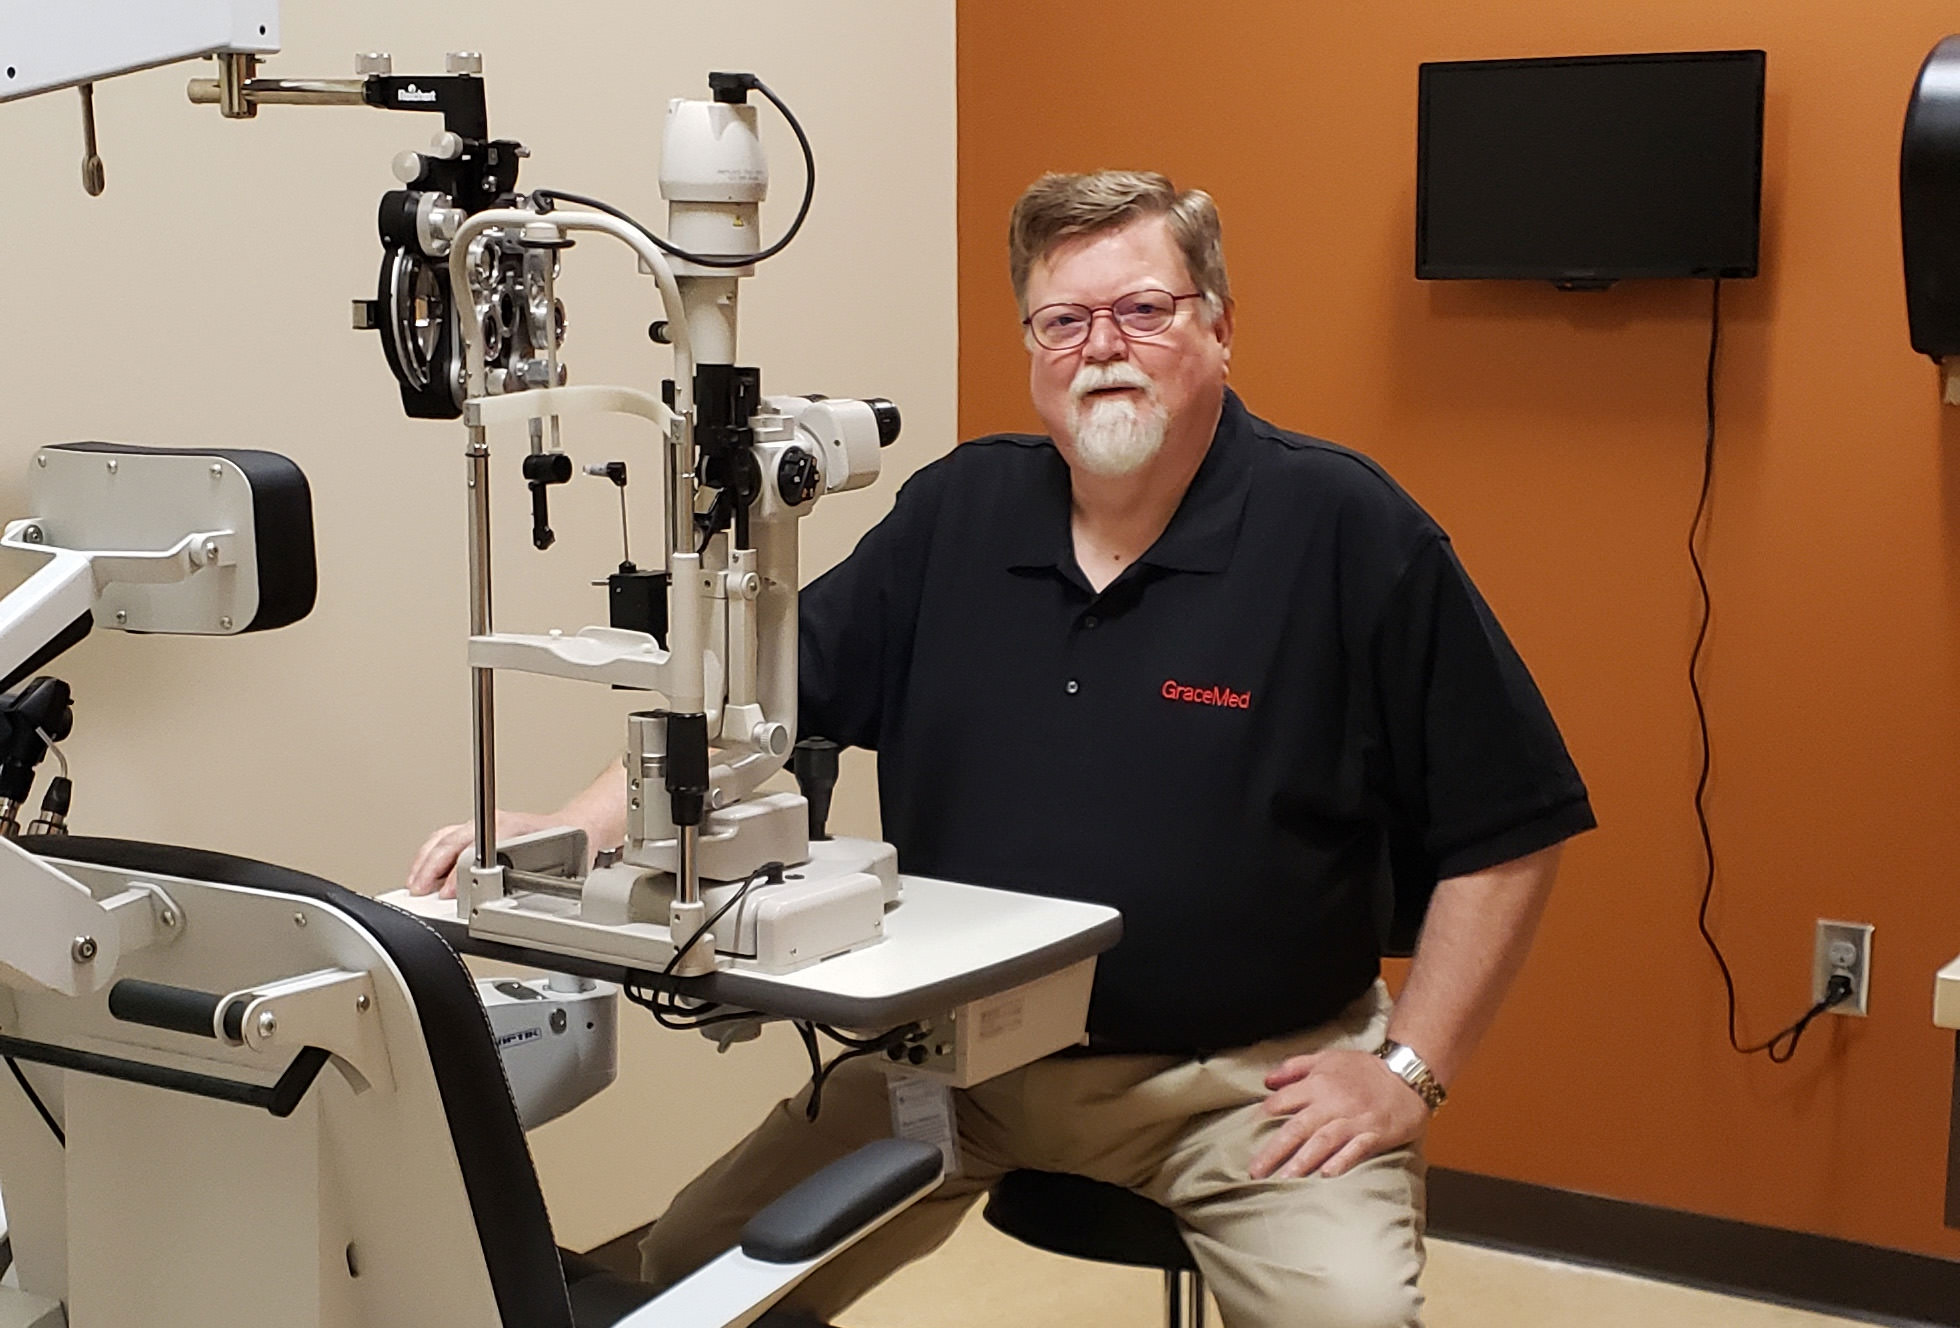 Dr. Mark Judd in an exam room at GraceMed Capitol Family Clinic